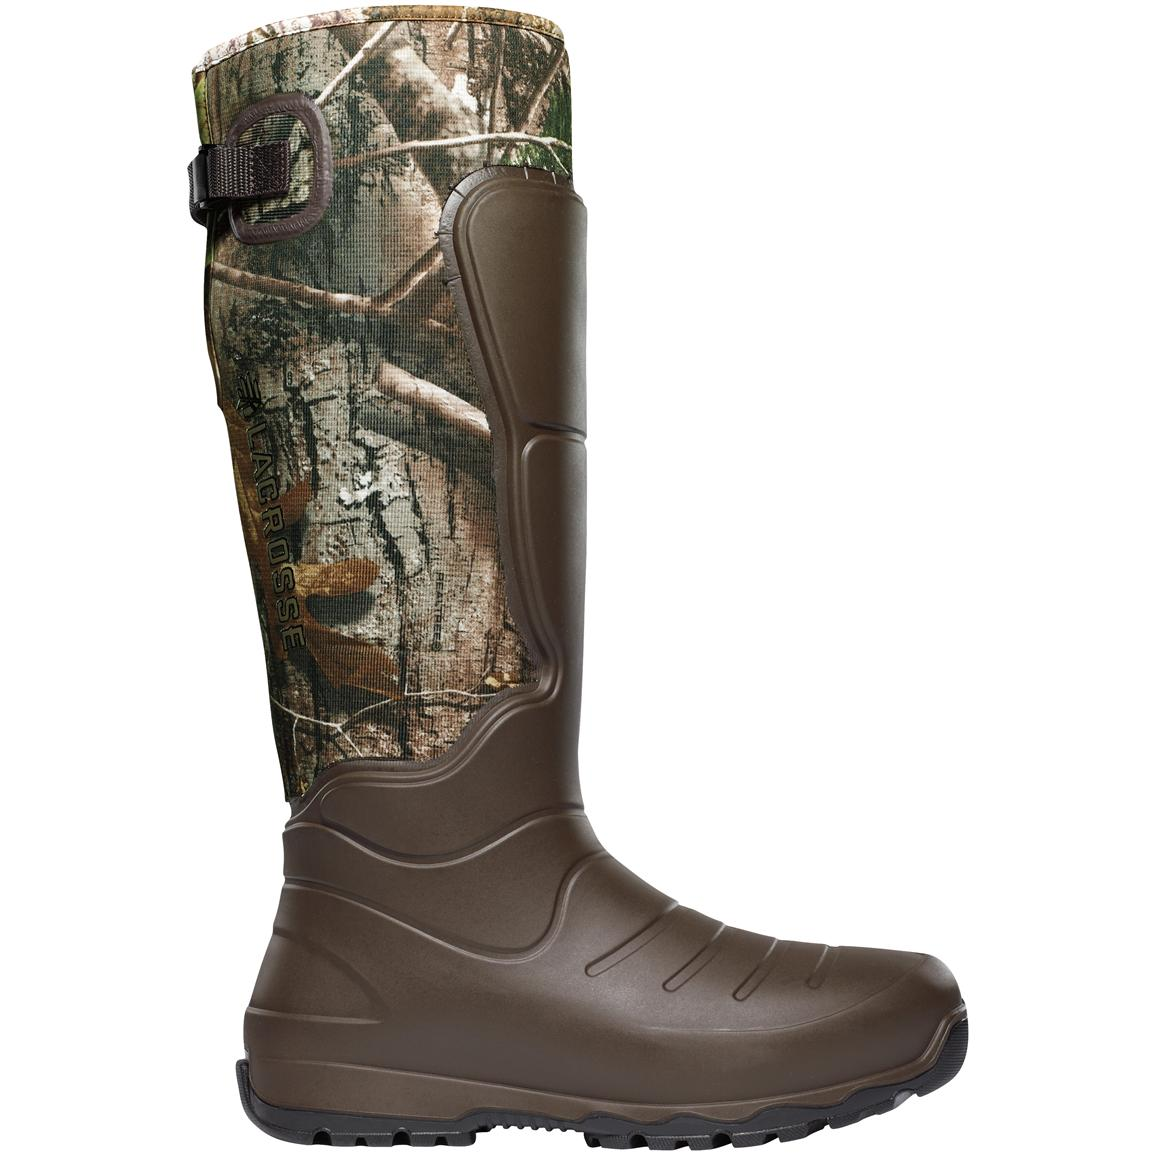 Mens Hunting Boots rxp2doLF